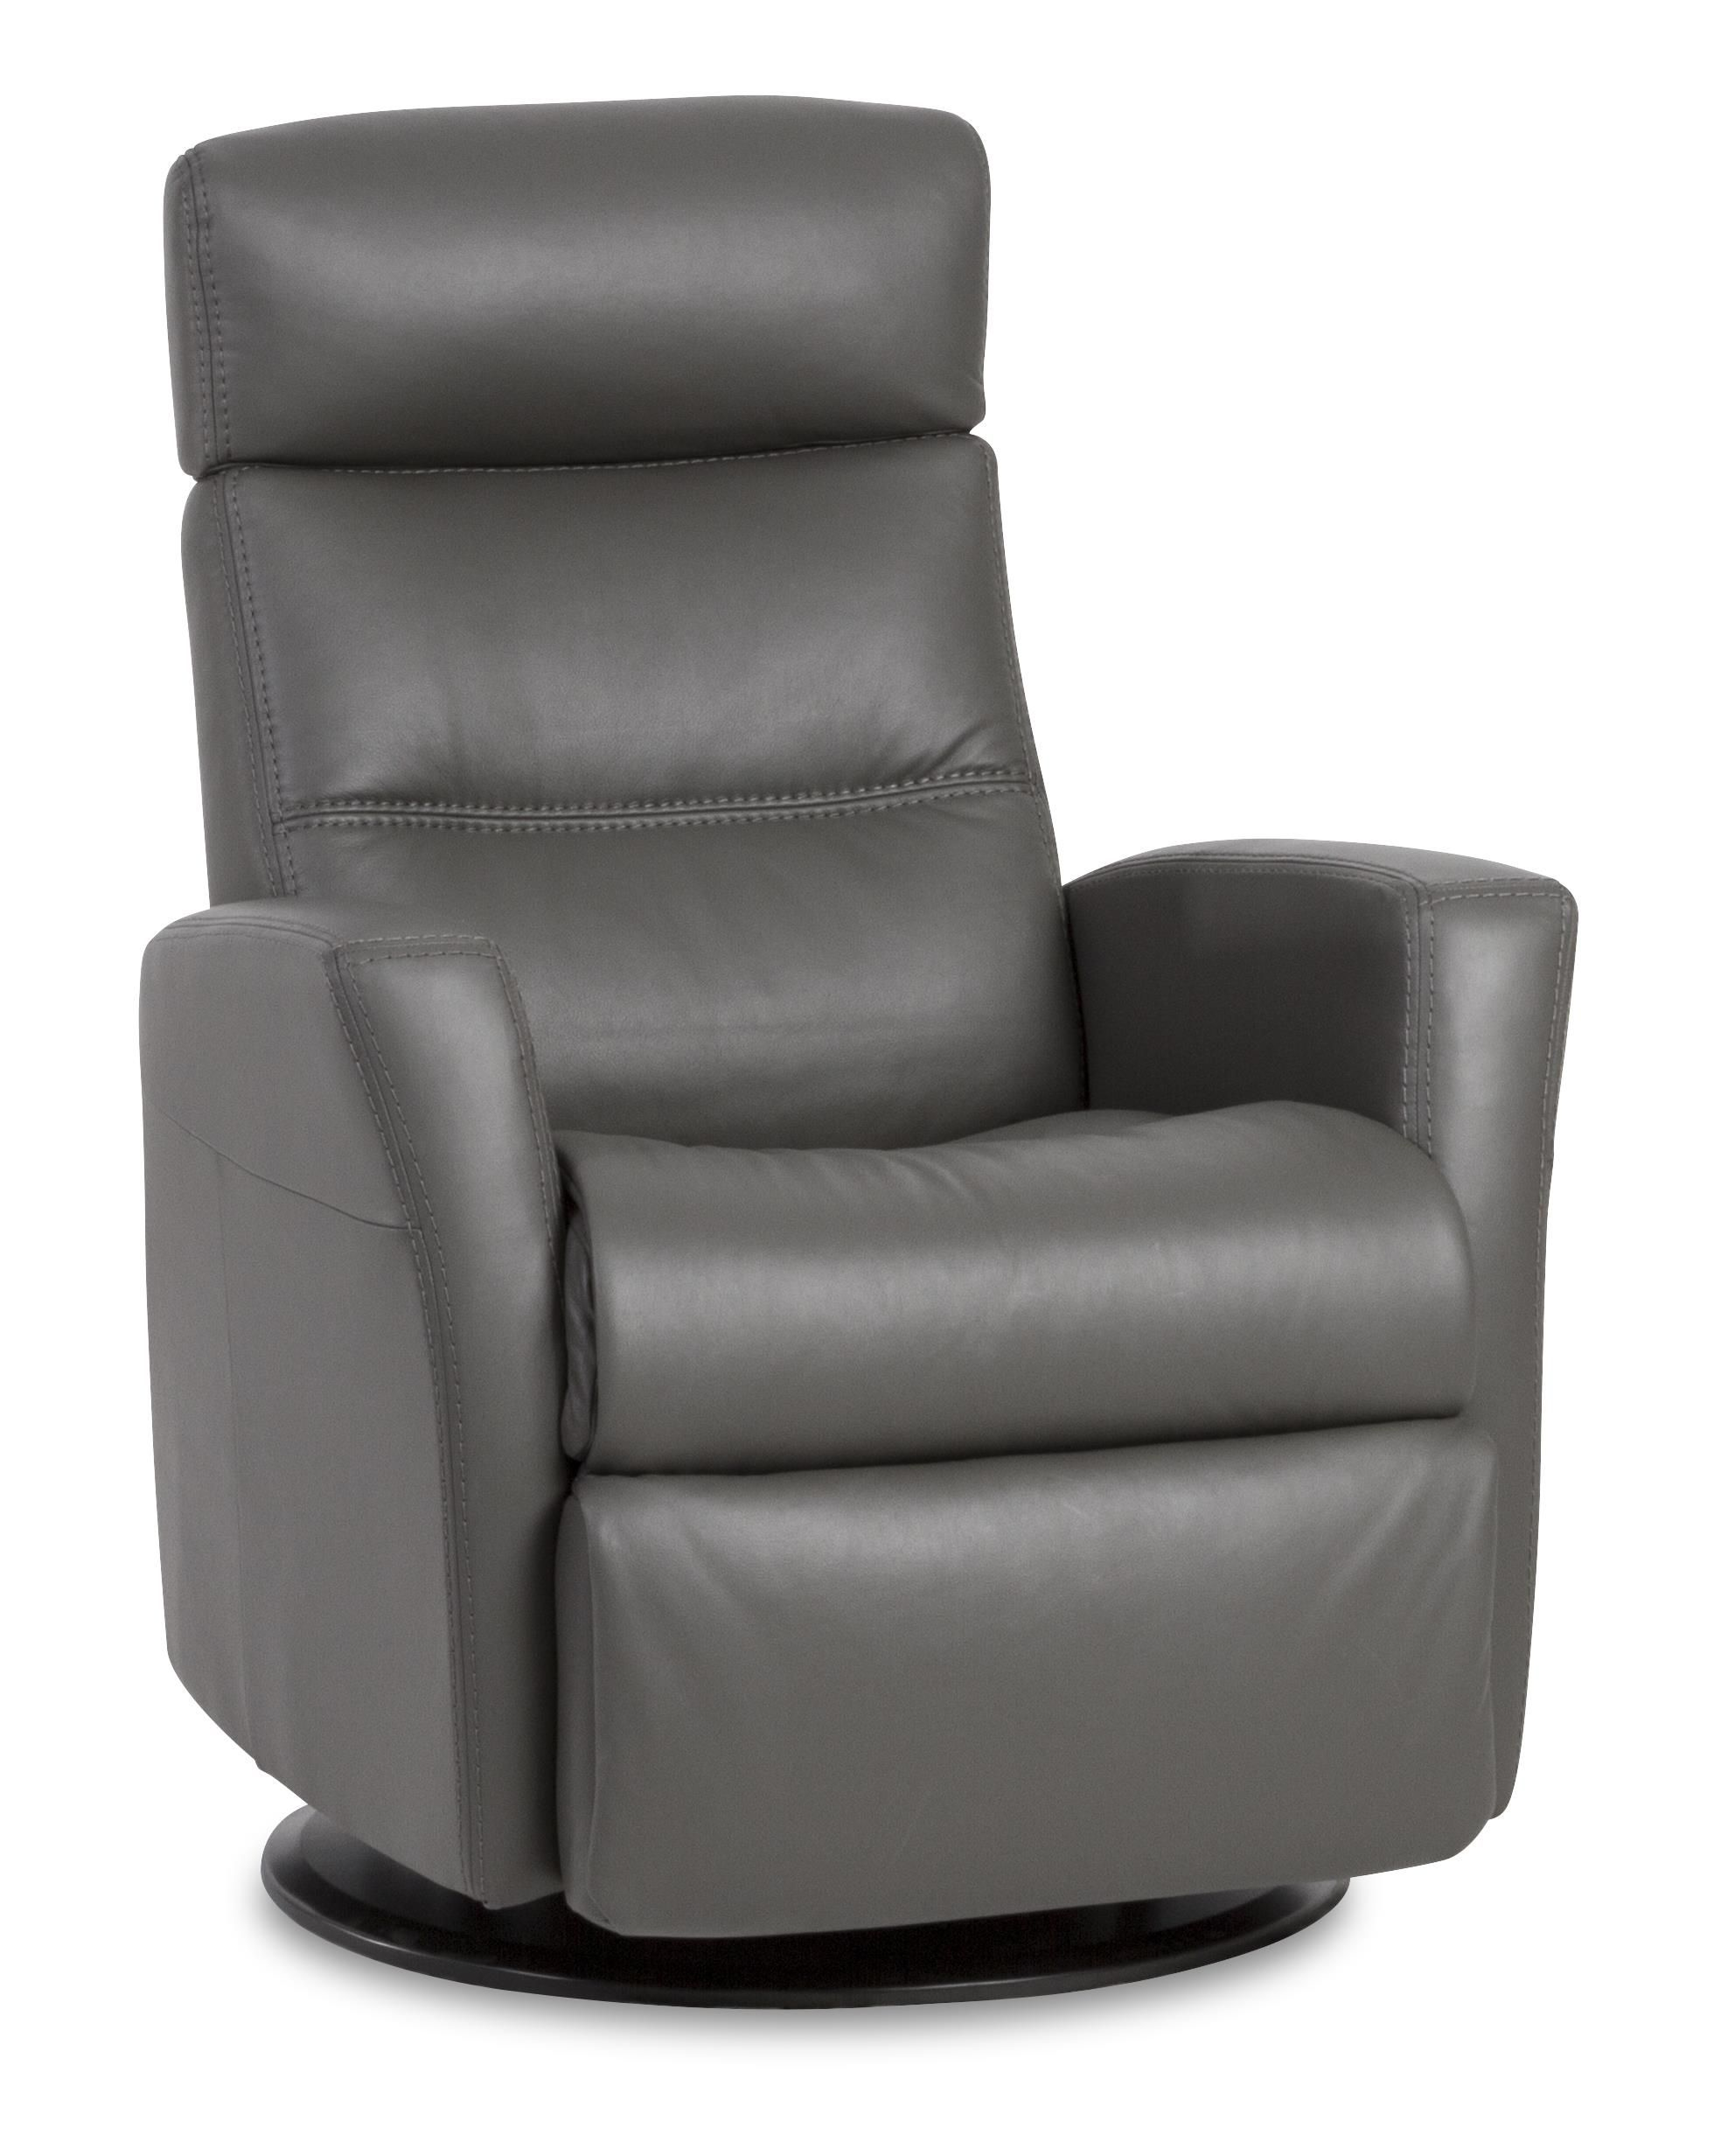 Marvelous Divani Compact Recliner With Swivel Glide And Rock By Img Squirreltailoven Fun Painted Chair Ideas Images Squirreltailovenorg